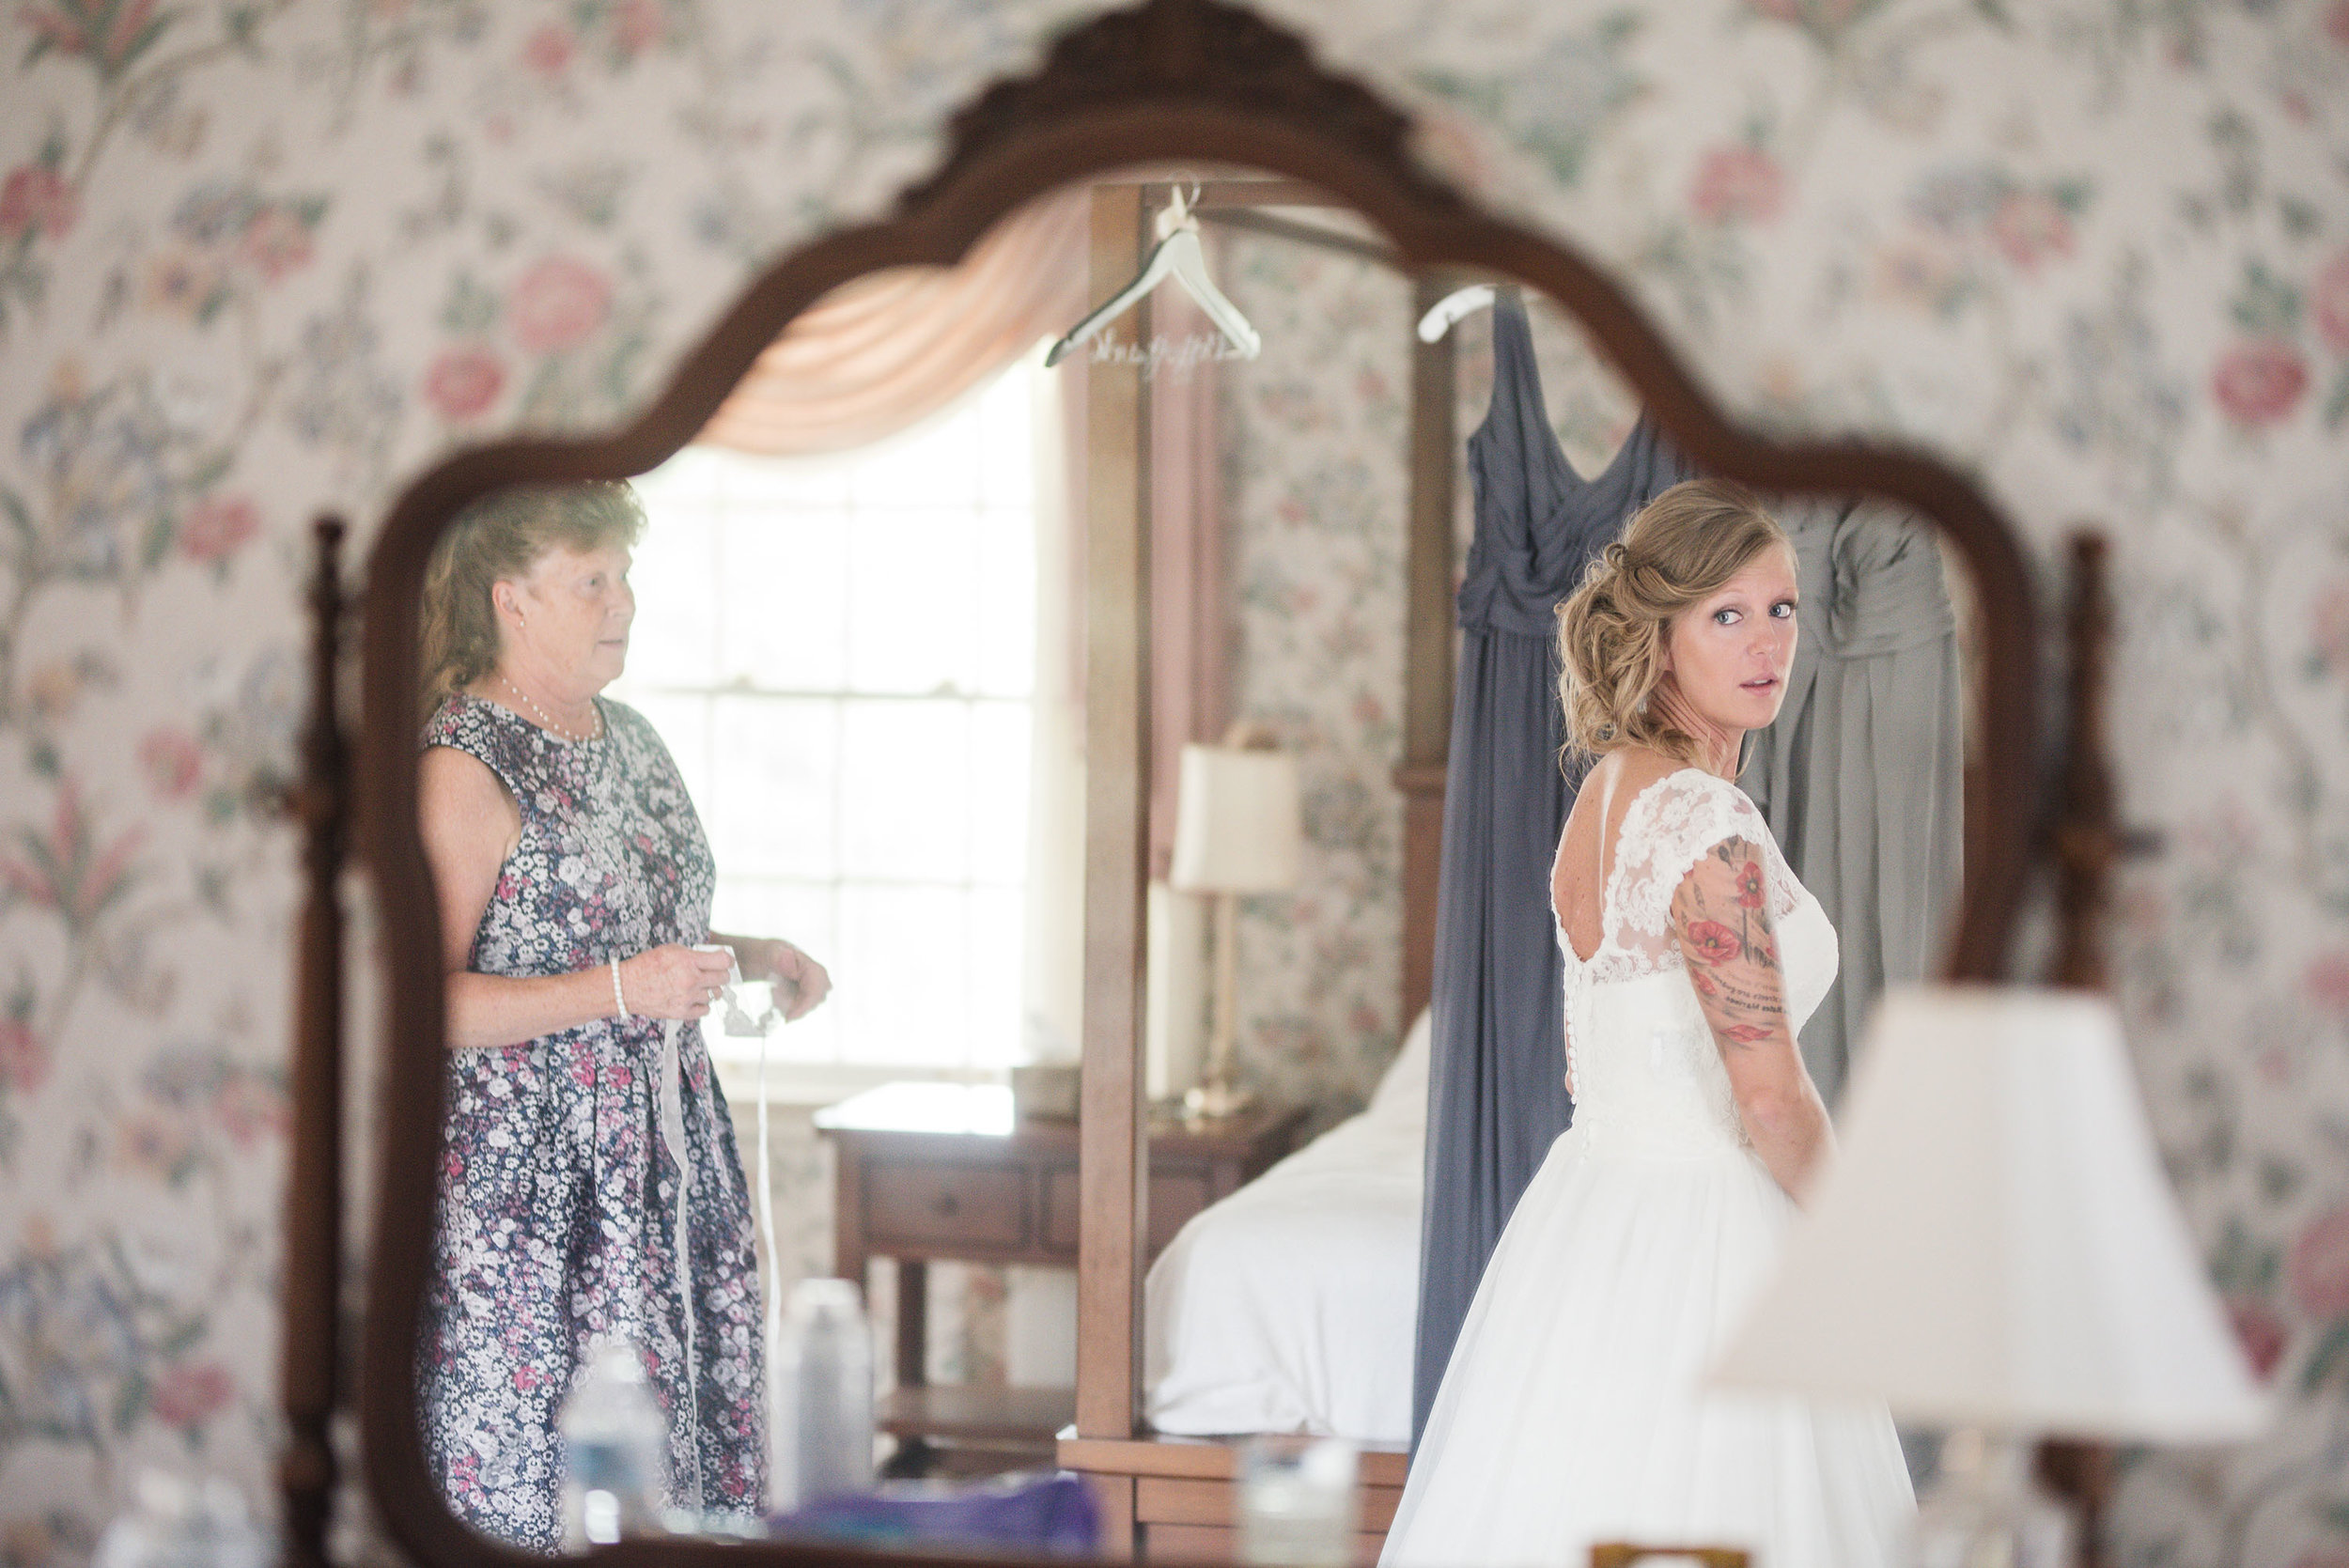 bride getting ready at her wedding little brook meadows lancaster ohio wedding photographer